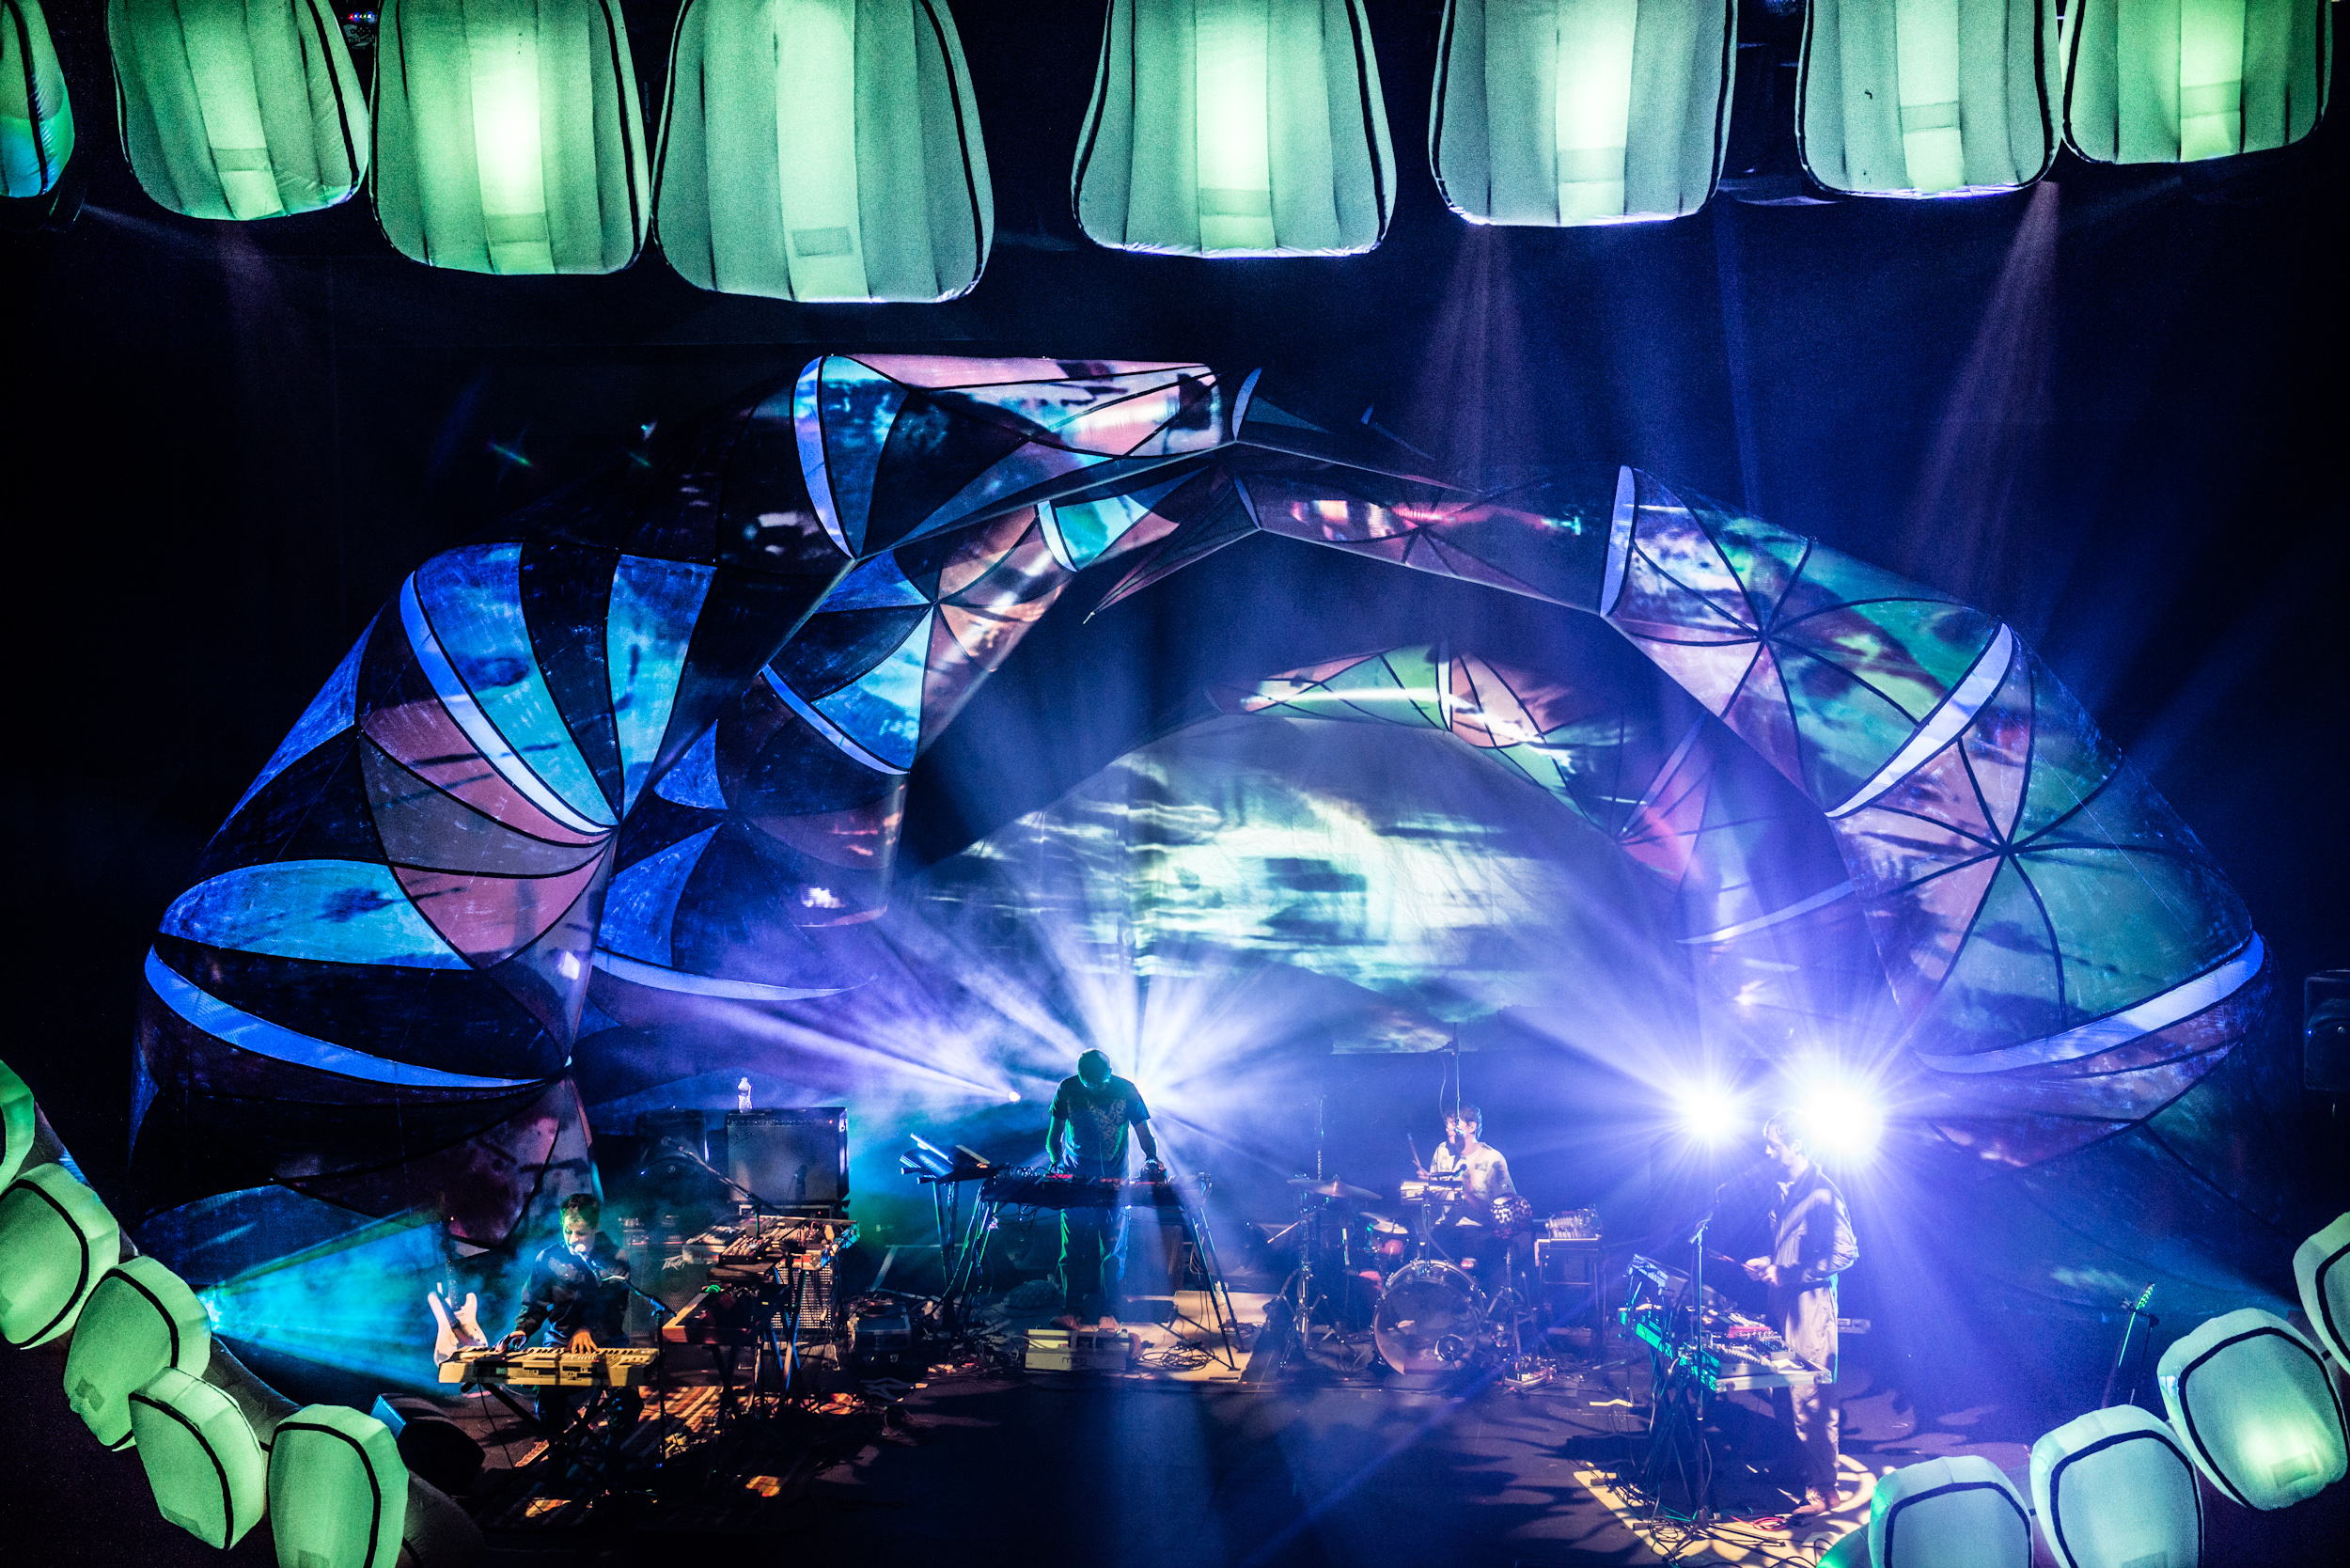 Animal Collective at The Paramount Theatre - Seattle on 2012-09-18 - _DSC7920.jpg